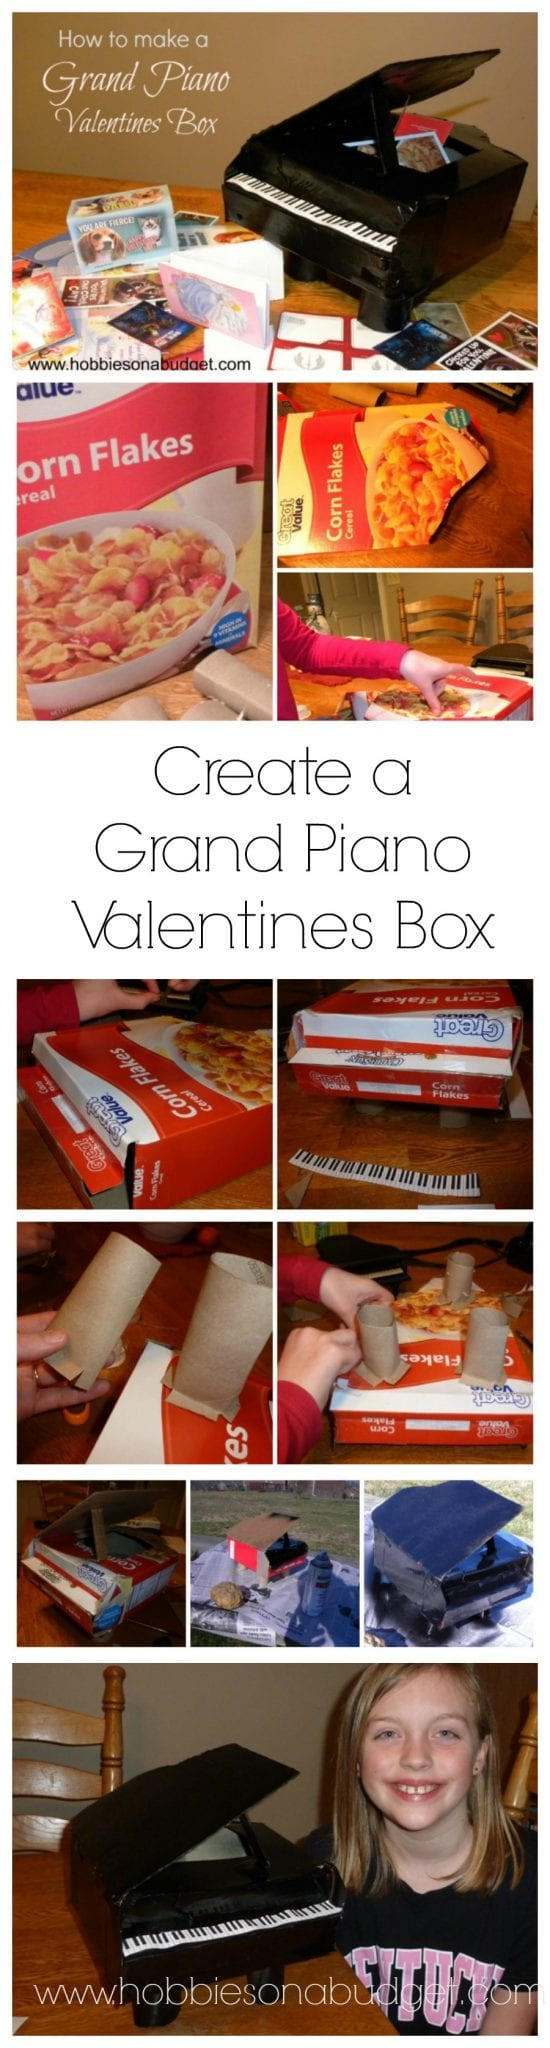 create-a-grand-piano-valentines-box